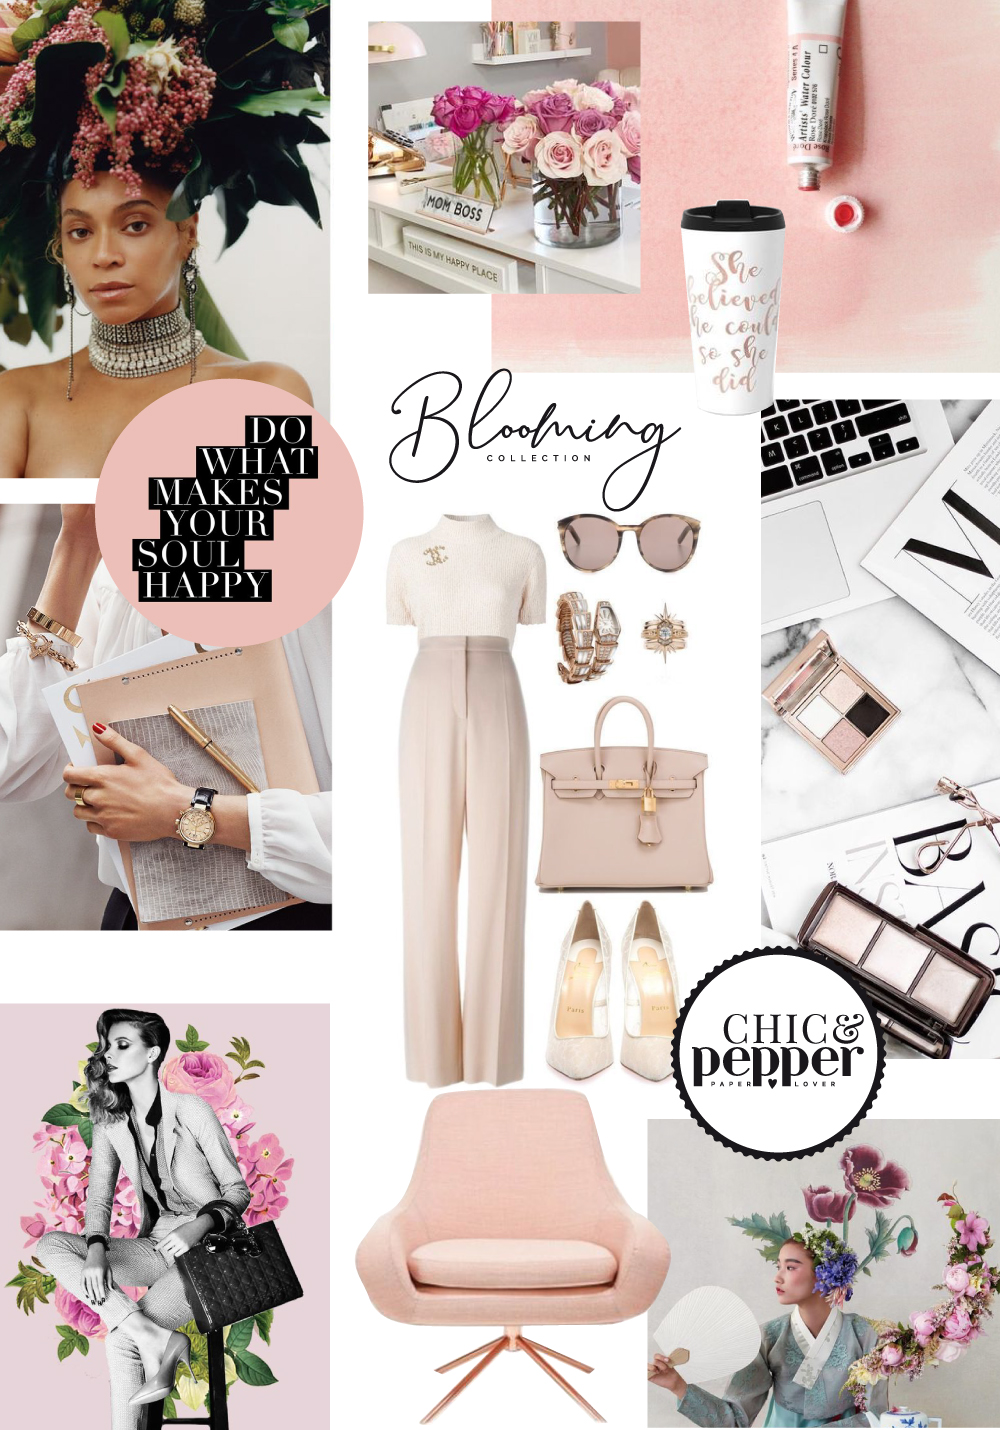 Air Chic Design:disque externe:EXOChic:1 -POSTS:1 - ARTICLES:2018:12 - DECEMBRE:03 - CHIC AND PEPPER:Chic and Pepper Collection Blooming Girl boss exochic 1.jpg